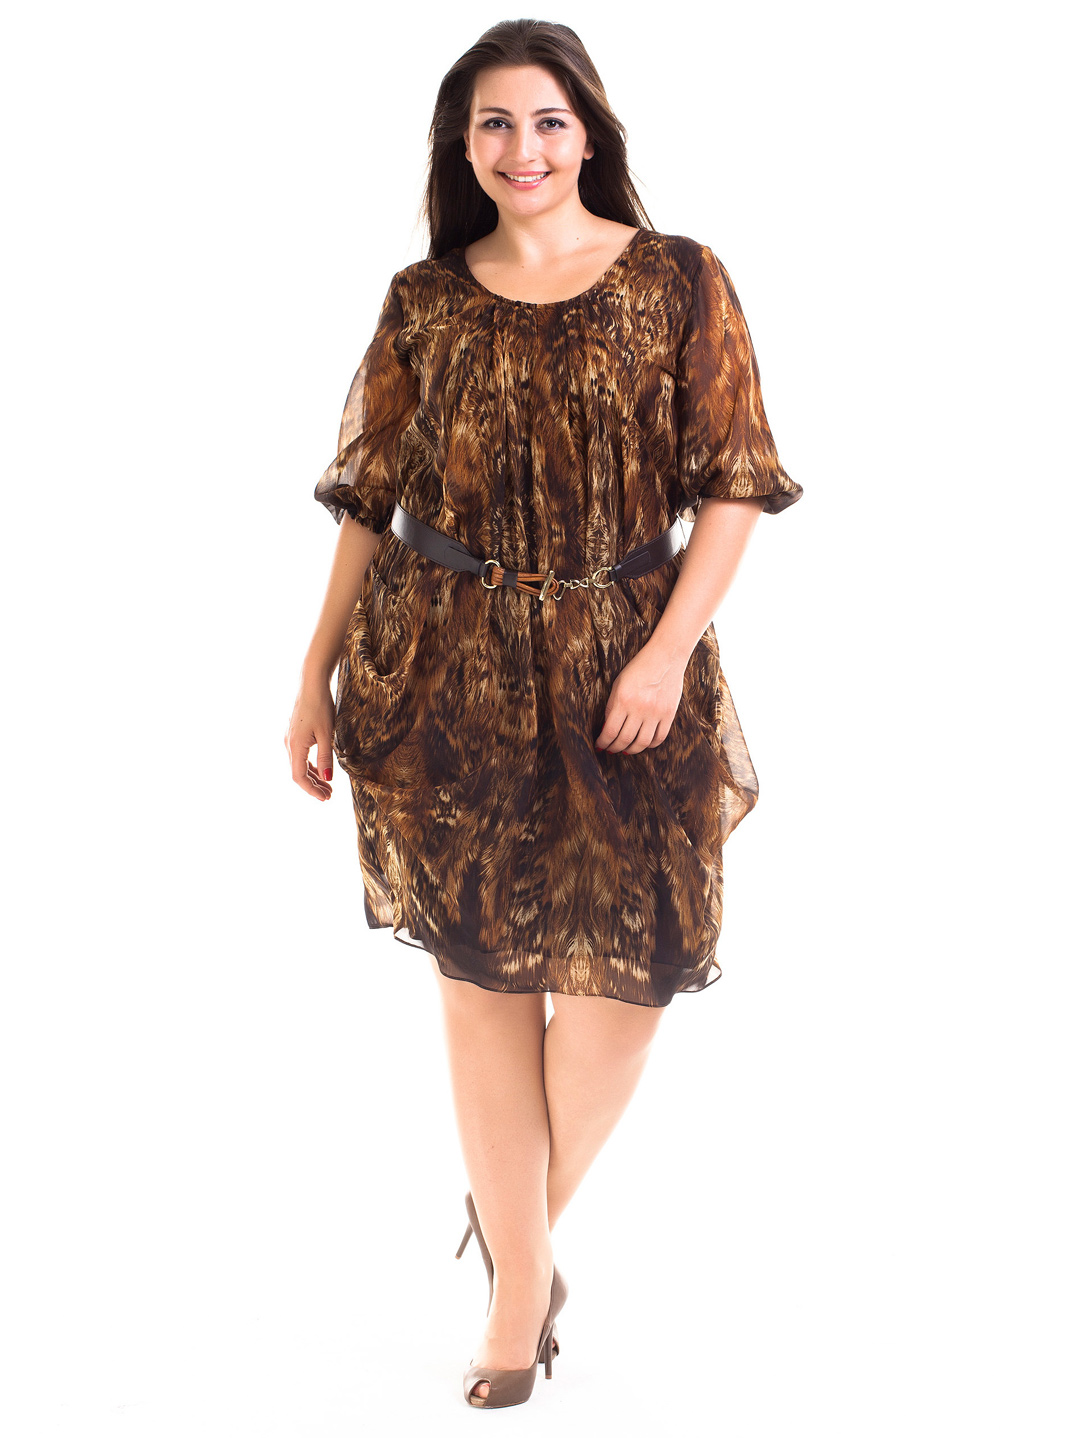 Our dresses are available in sizes 12 to 44 (S to 6X), and were designed to flatter your curves, helping you look your best regardless of where the moment takes you. For formal events, check out our plus size special occasion dresses, like the Valentina Illusion Dress with body-shaping technology, lace half sleeves, and silhouette-enhancing.